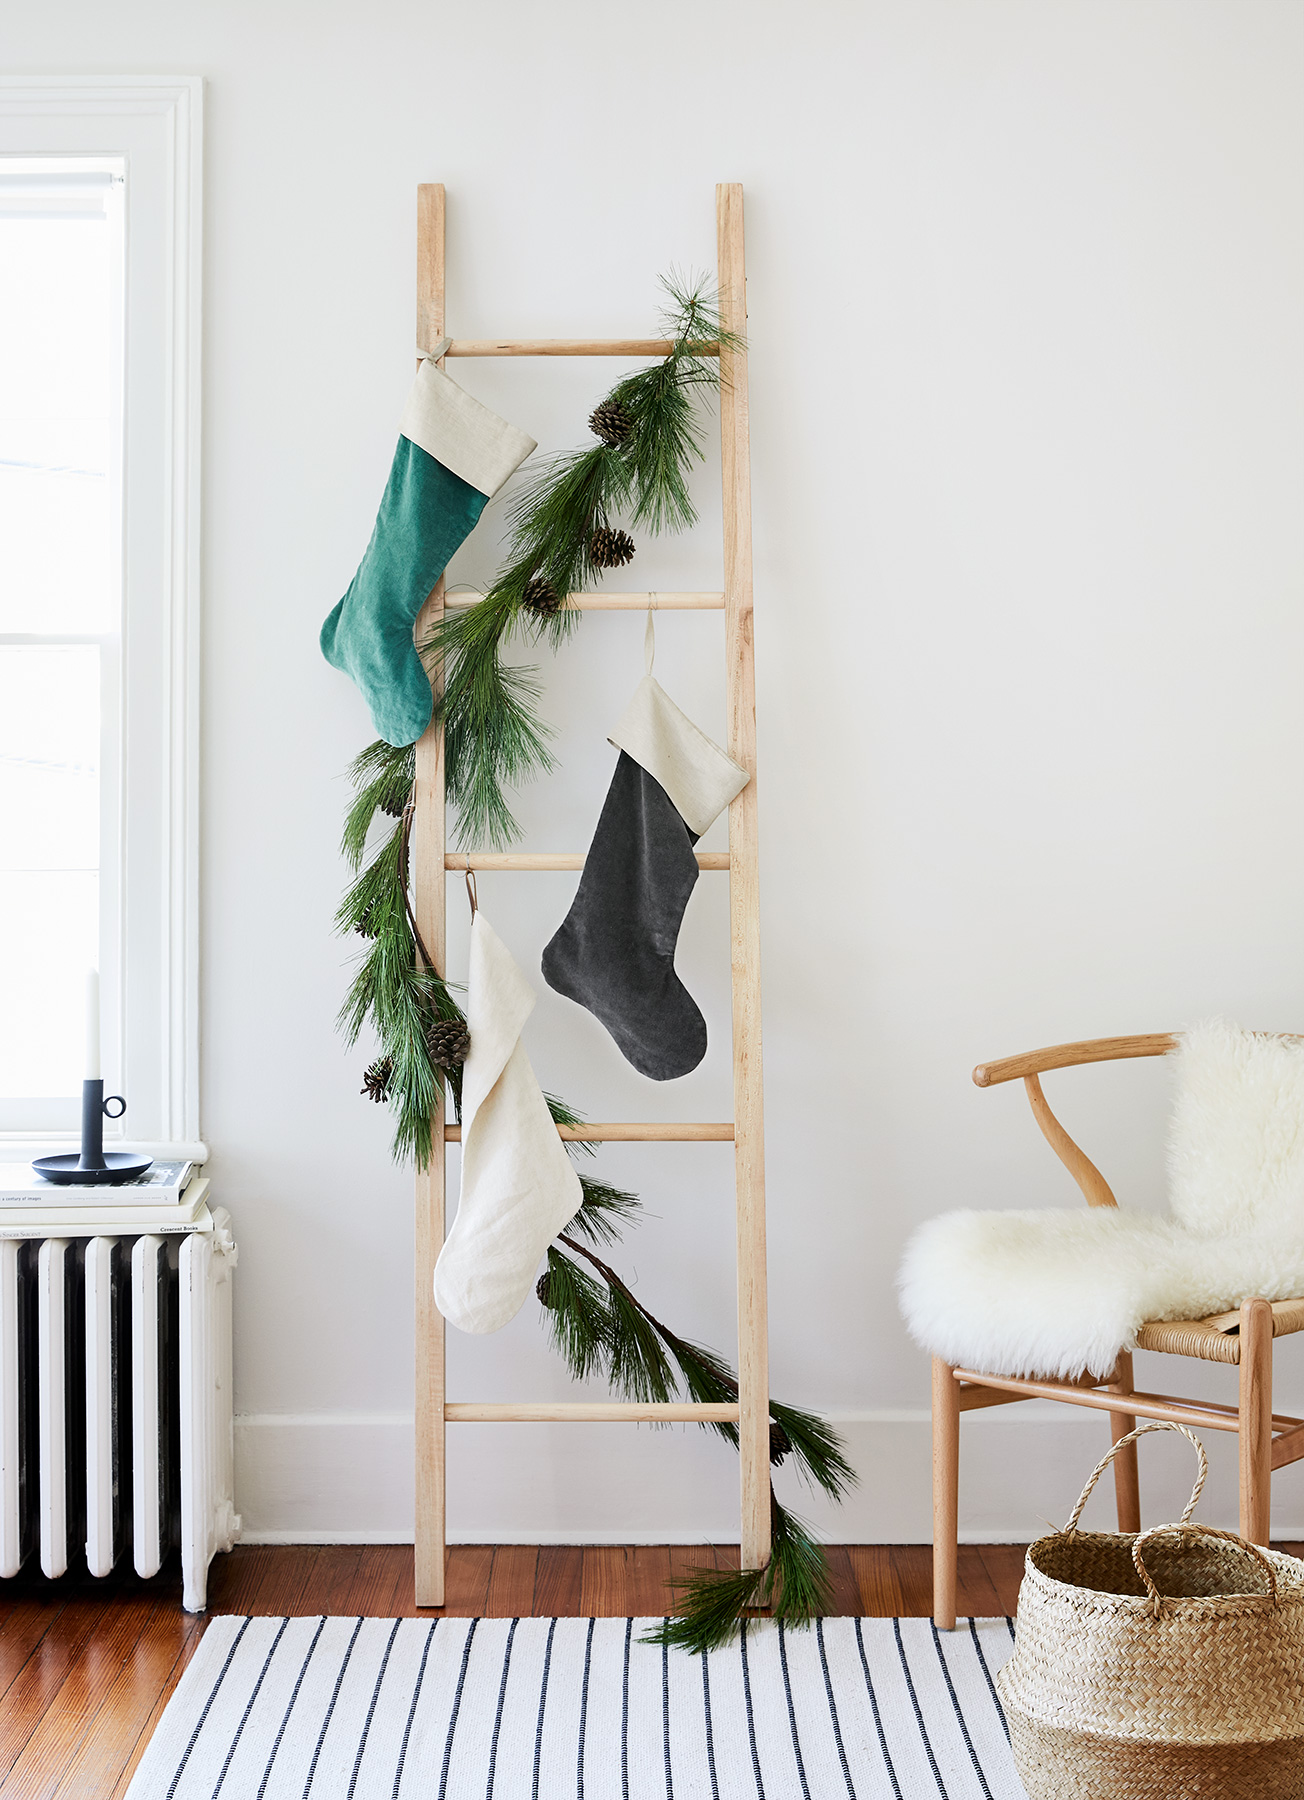 Christmas decoration ideas - Leaning Ladder